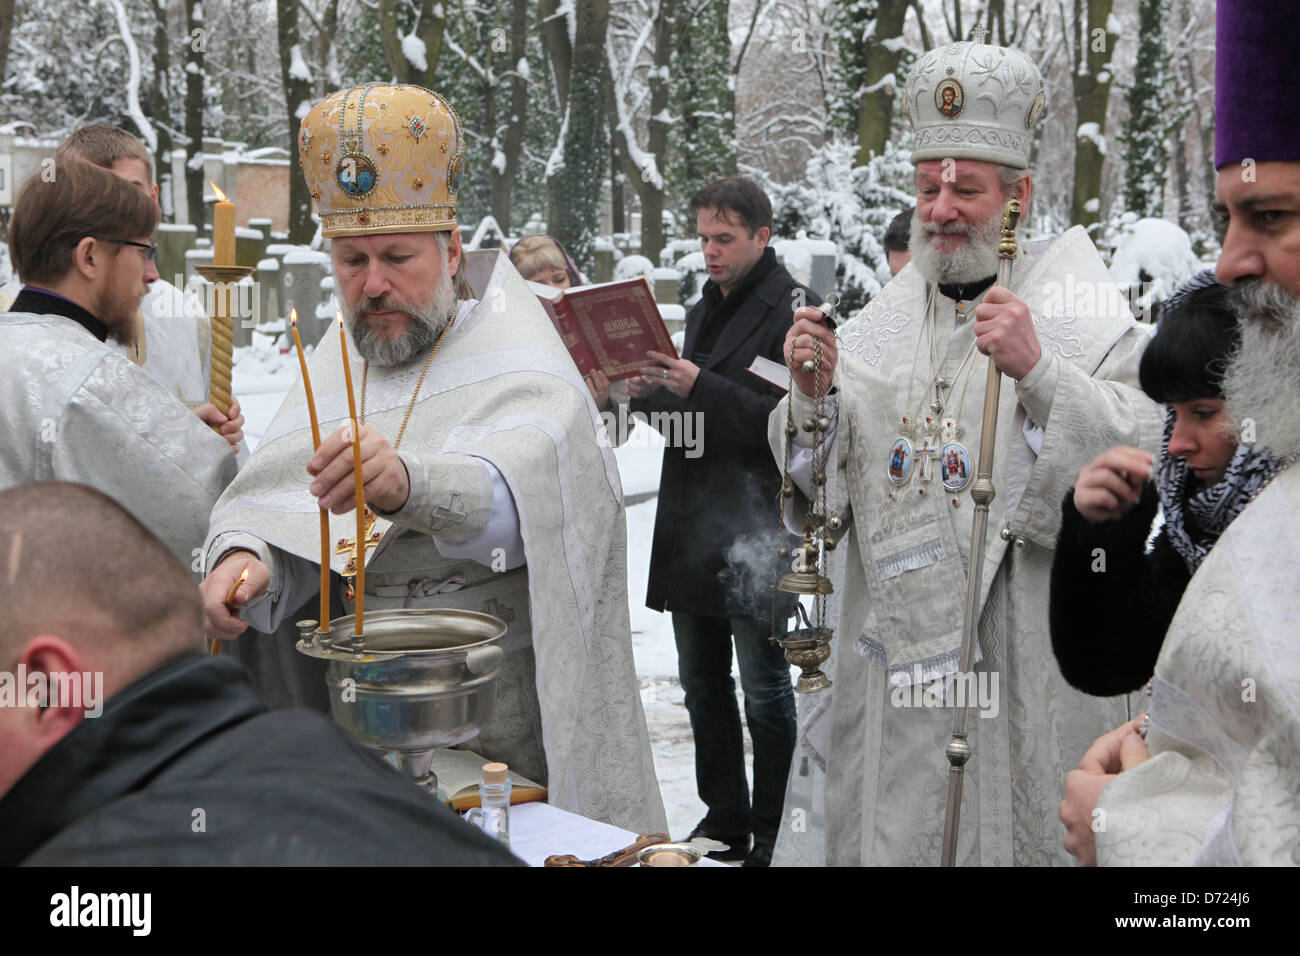 Orthodox Metropolitan Christopher consecrates Epiphany water in front of Dormition Church at the Olsany Cemetery - Stock Image